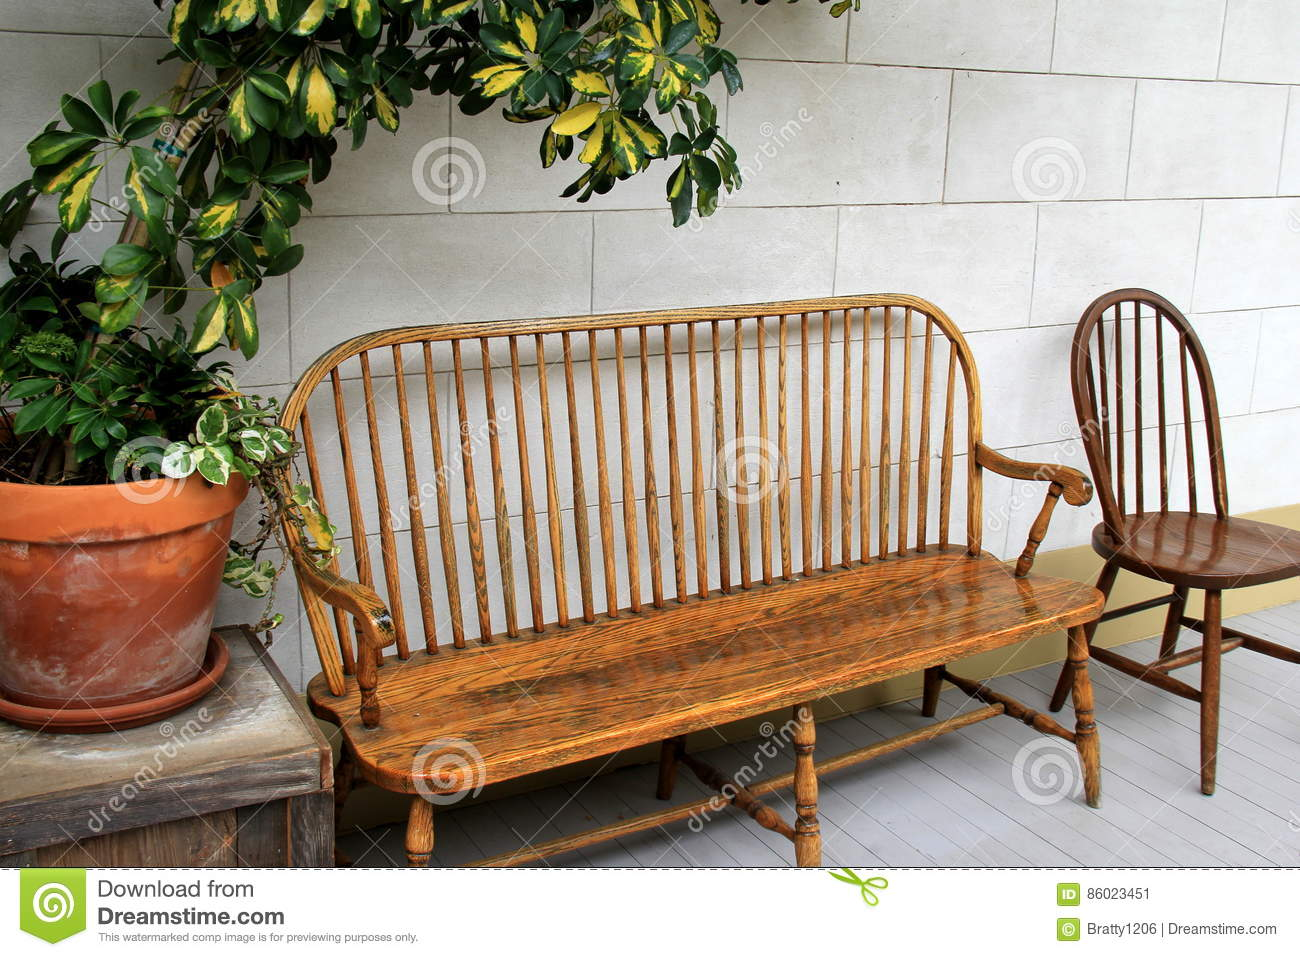 Download Pretty Wood Benches And Chairs With Large Potted Plants On Table  Nearby Stock Image